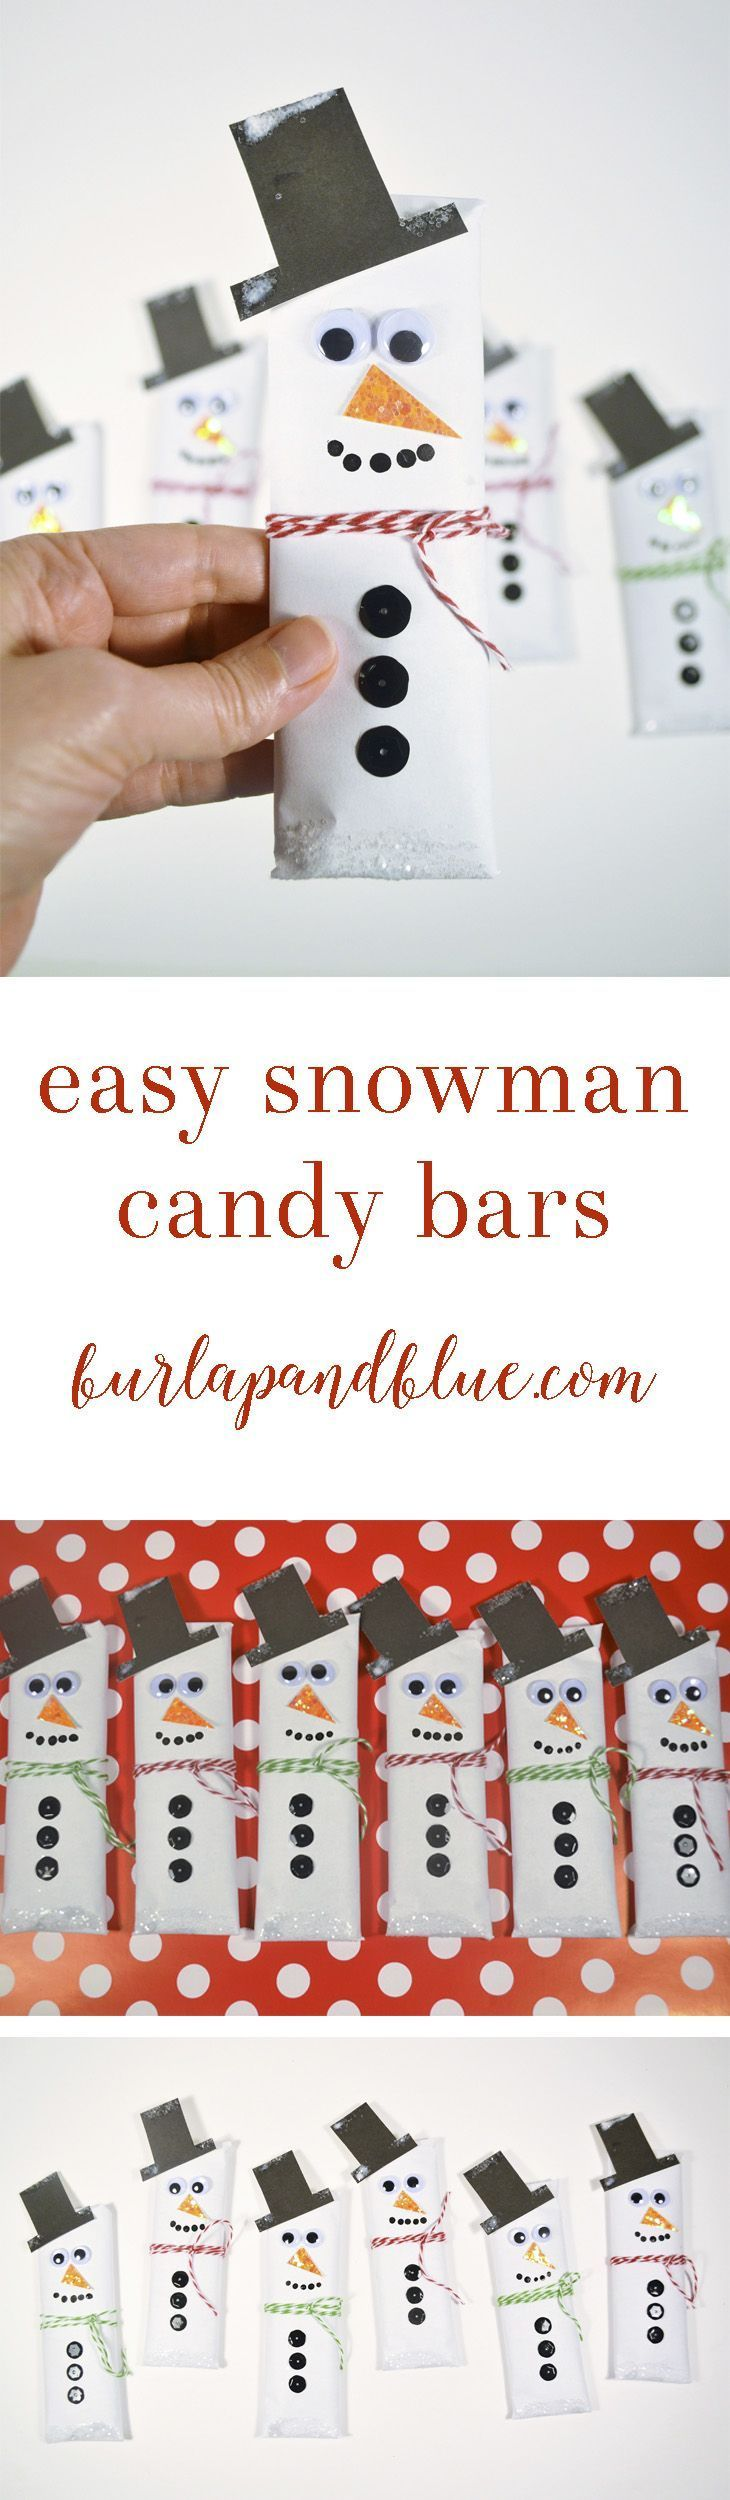 Xmas Arts And Crafts Candy Stuffers